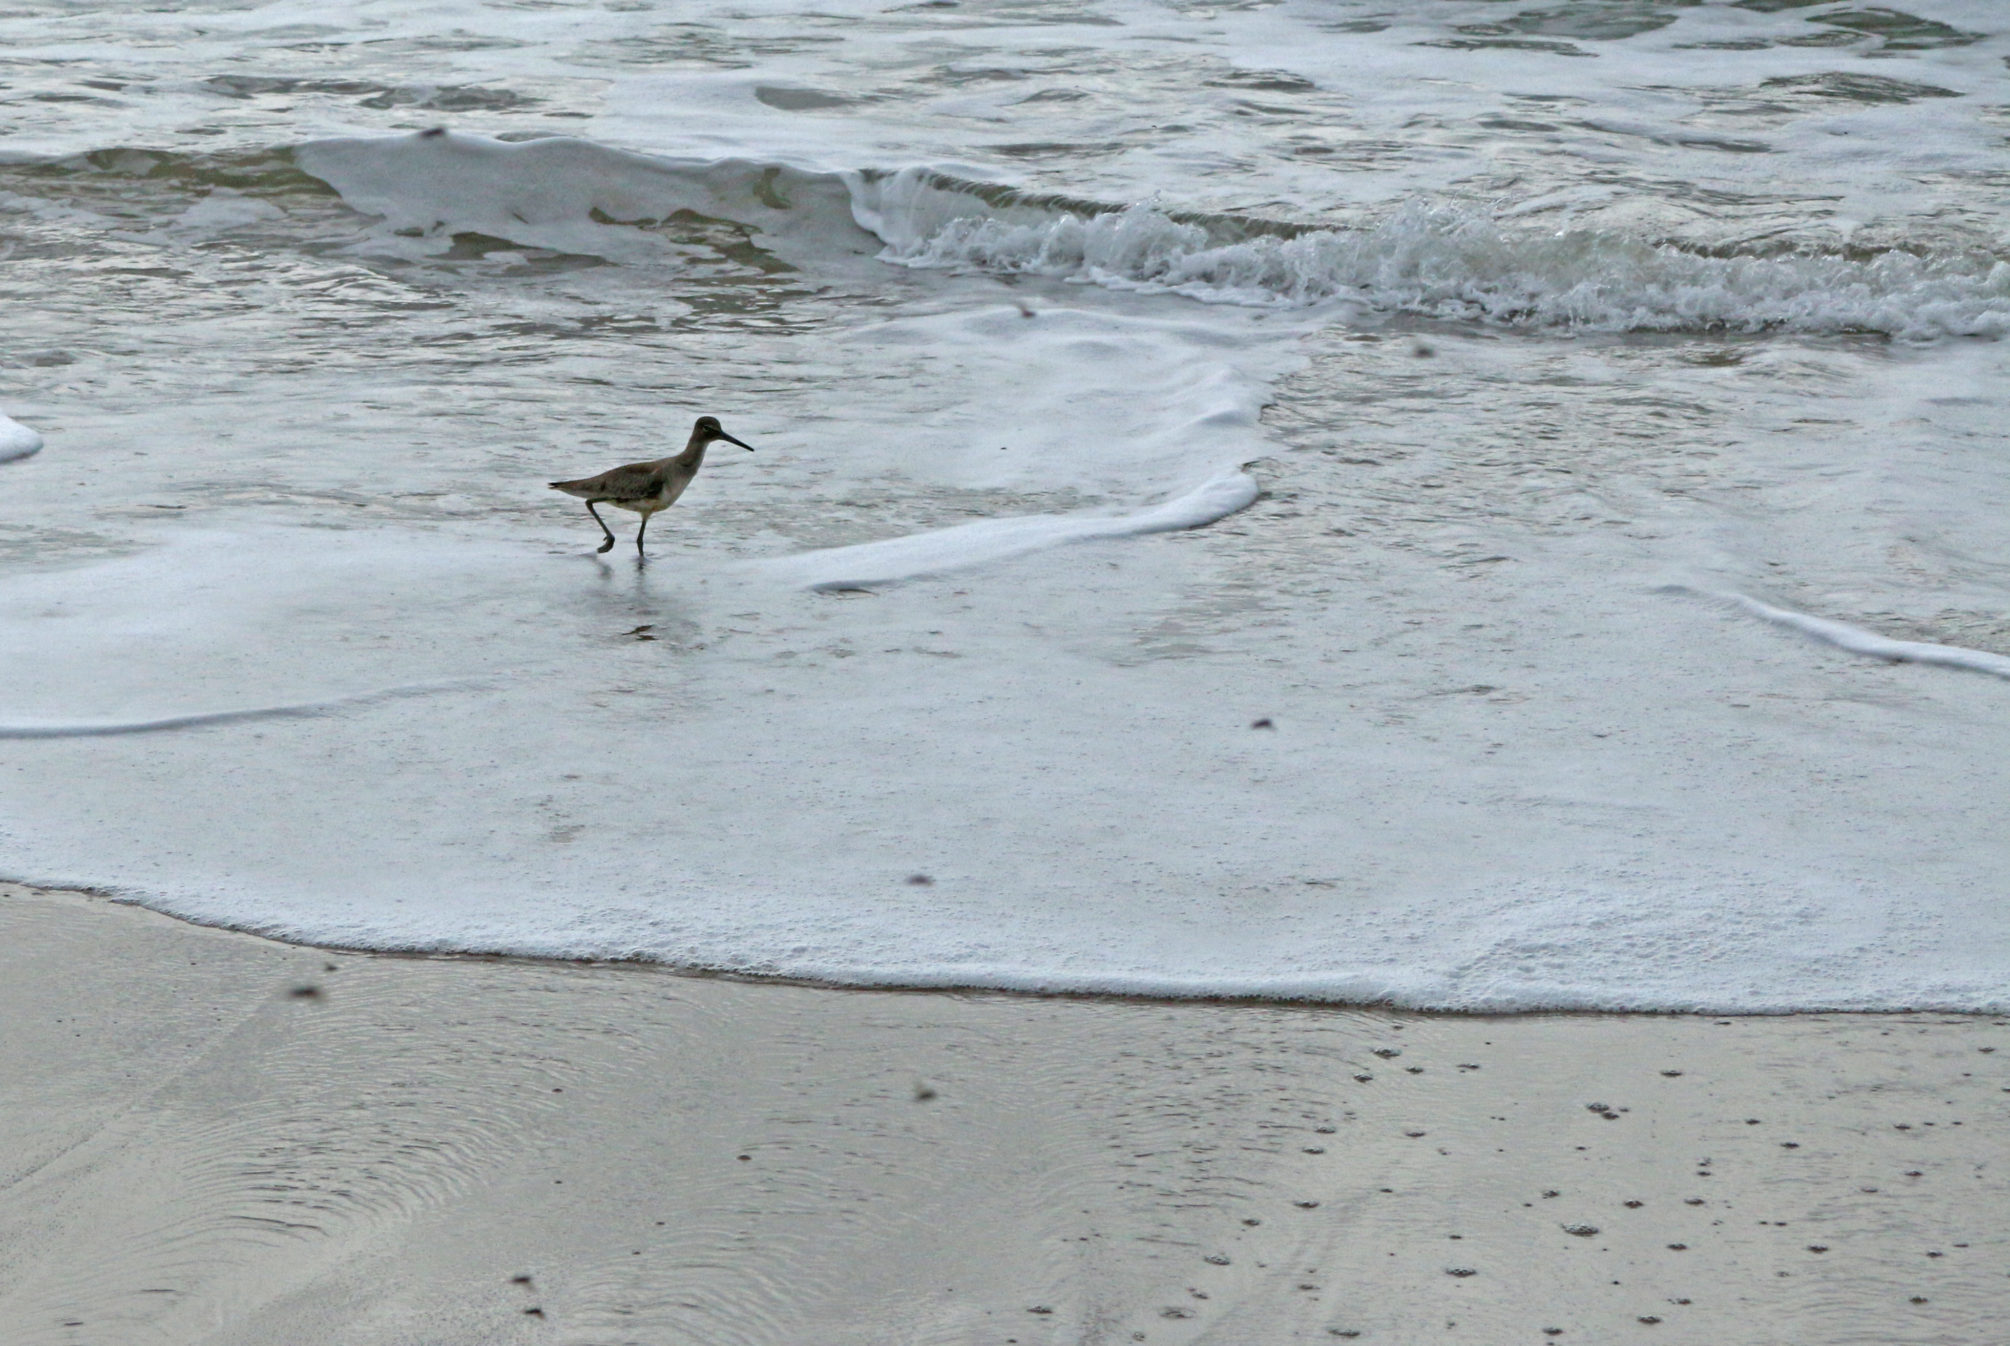 A hungry shorebird searches for tiny crustaceans - including beach hoppers - to pluck from the shoreline.